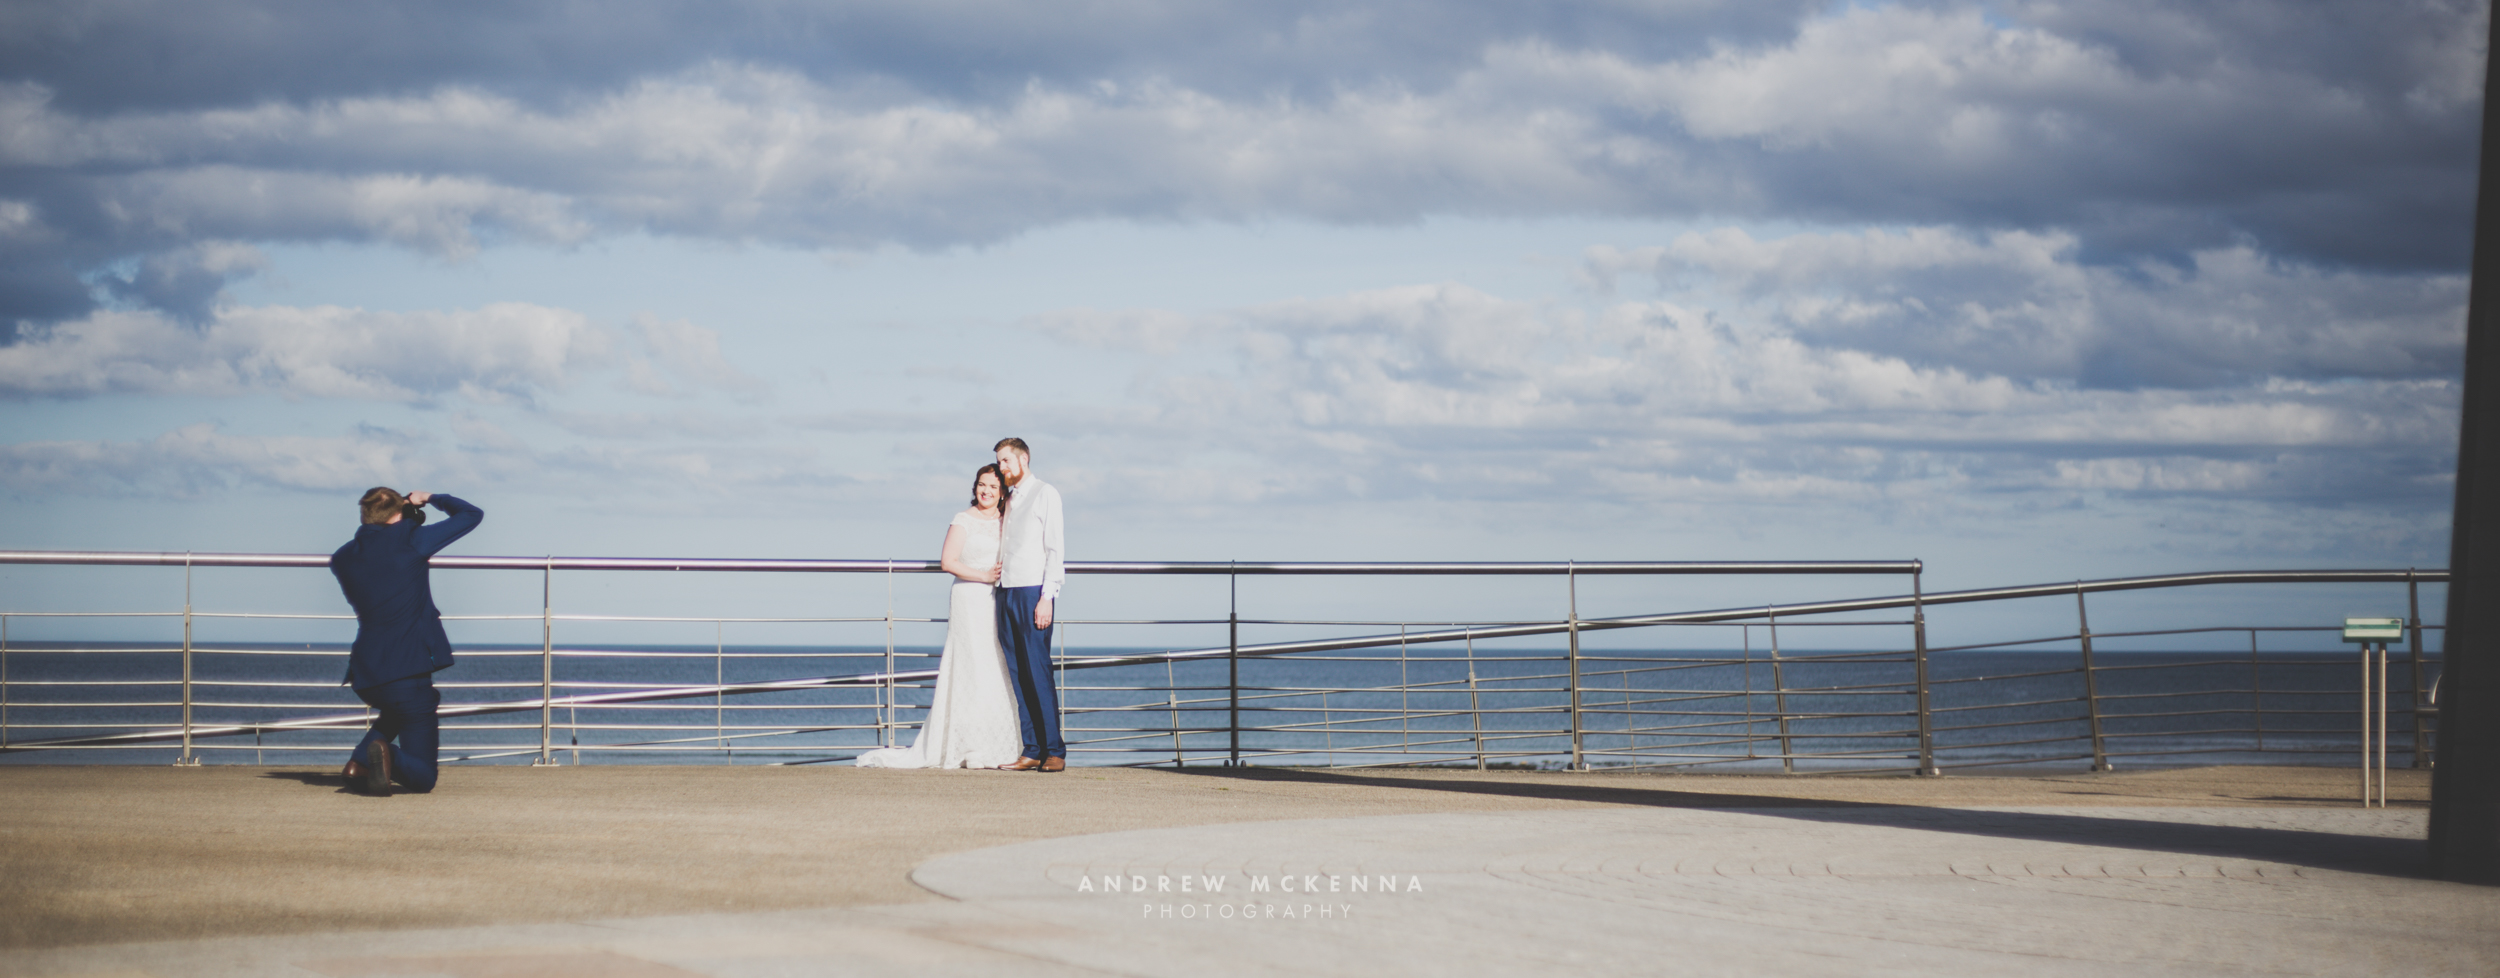 Wedding Photography at Hugh McCann's Newcastle. Photographer Andrew McKenna, Newcastle County Down, Northern Ireland.